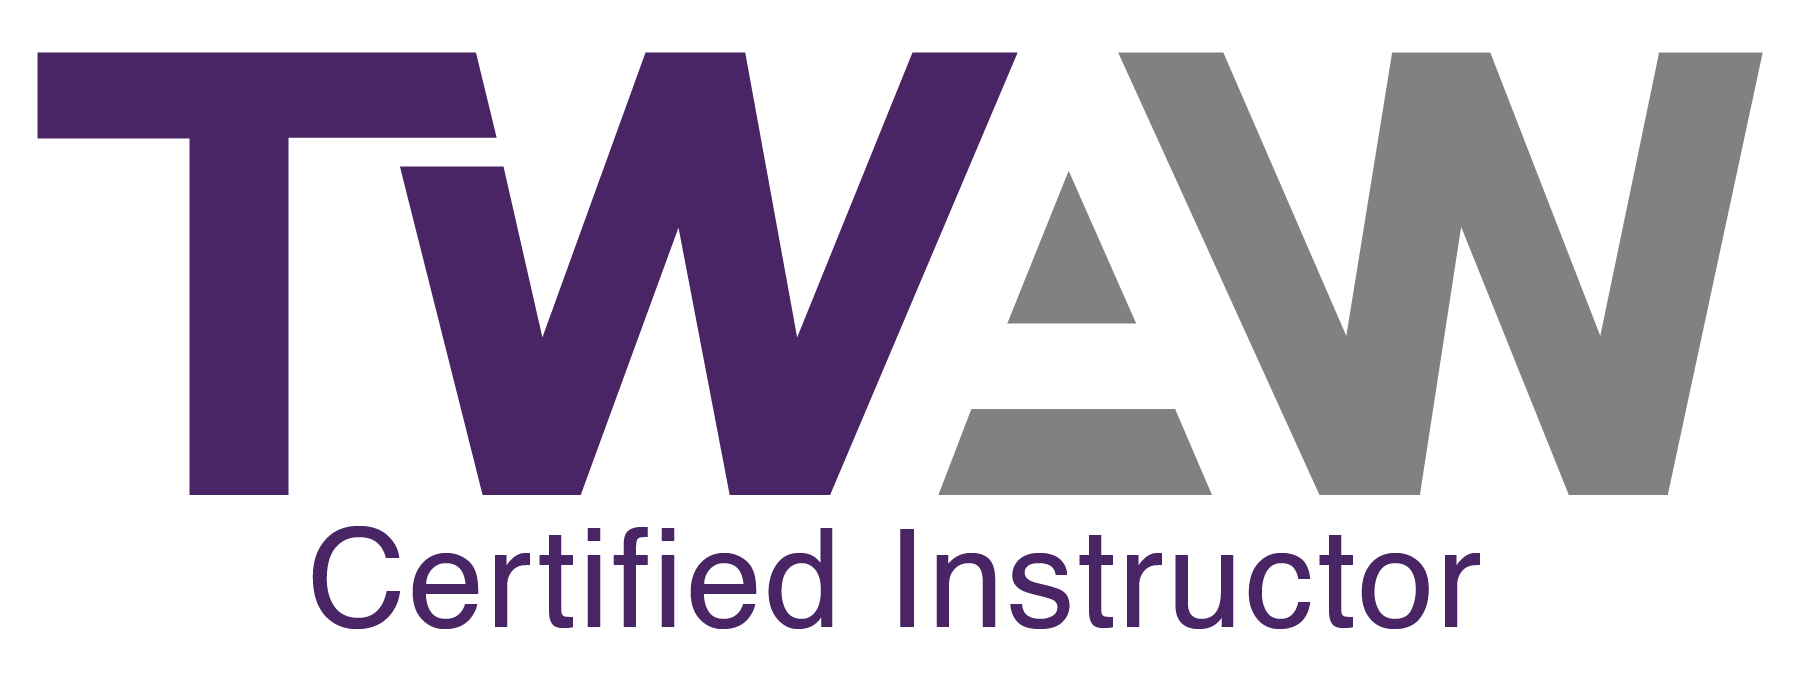 TWAW new logo-01.png